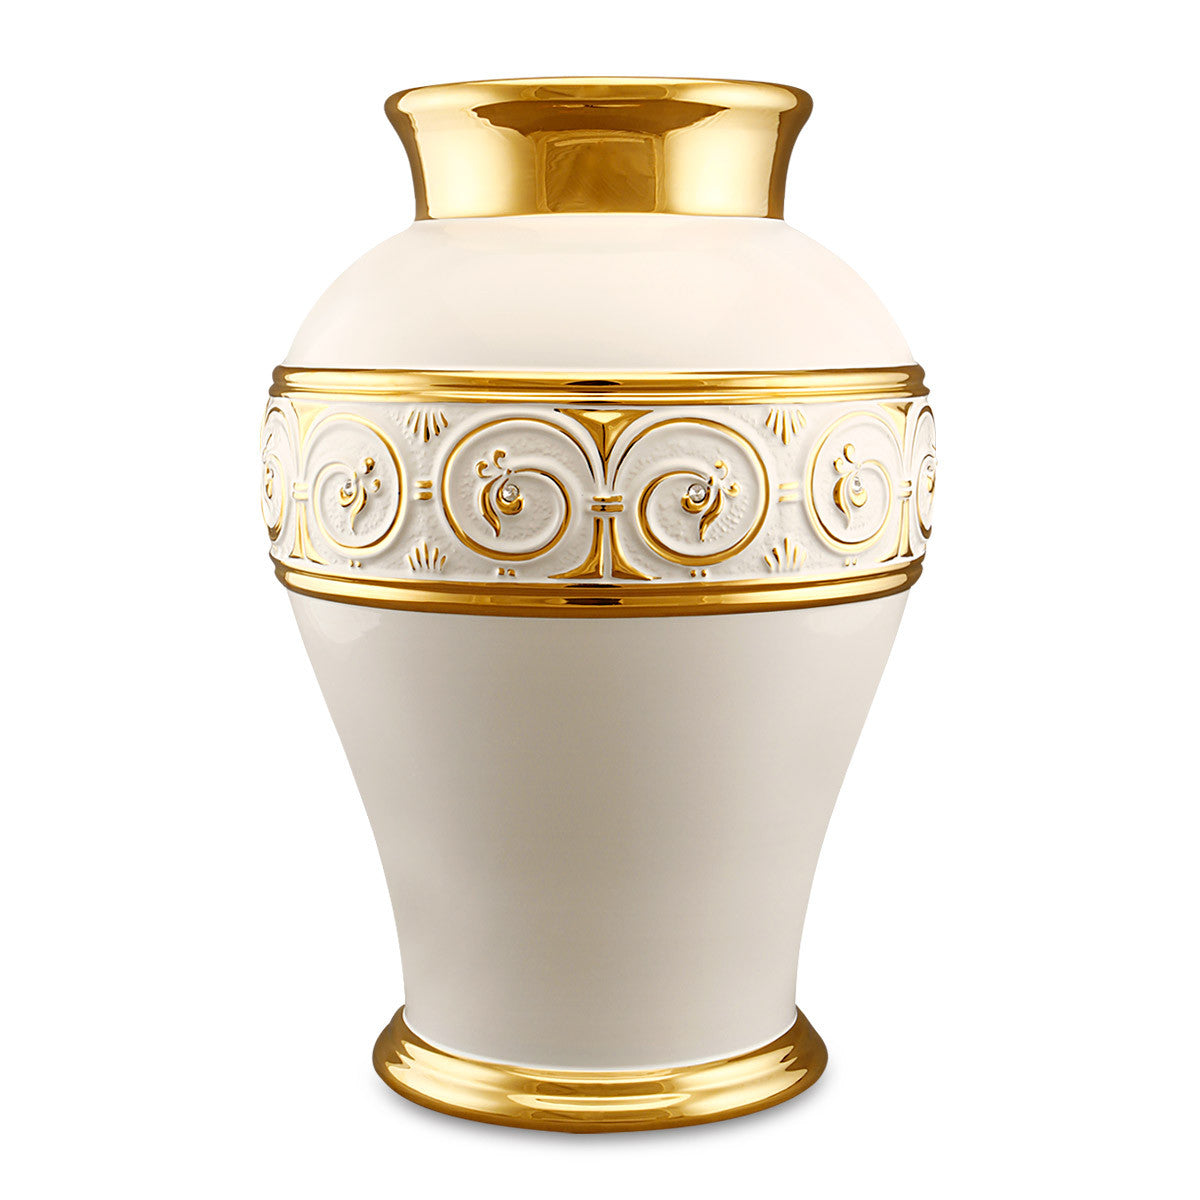 Ceramic amphora vase with greek and gold accents